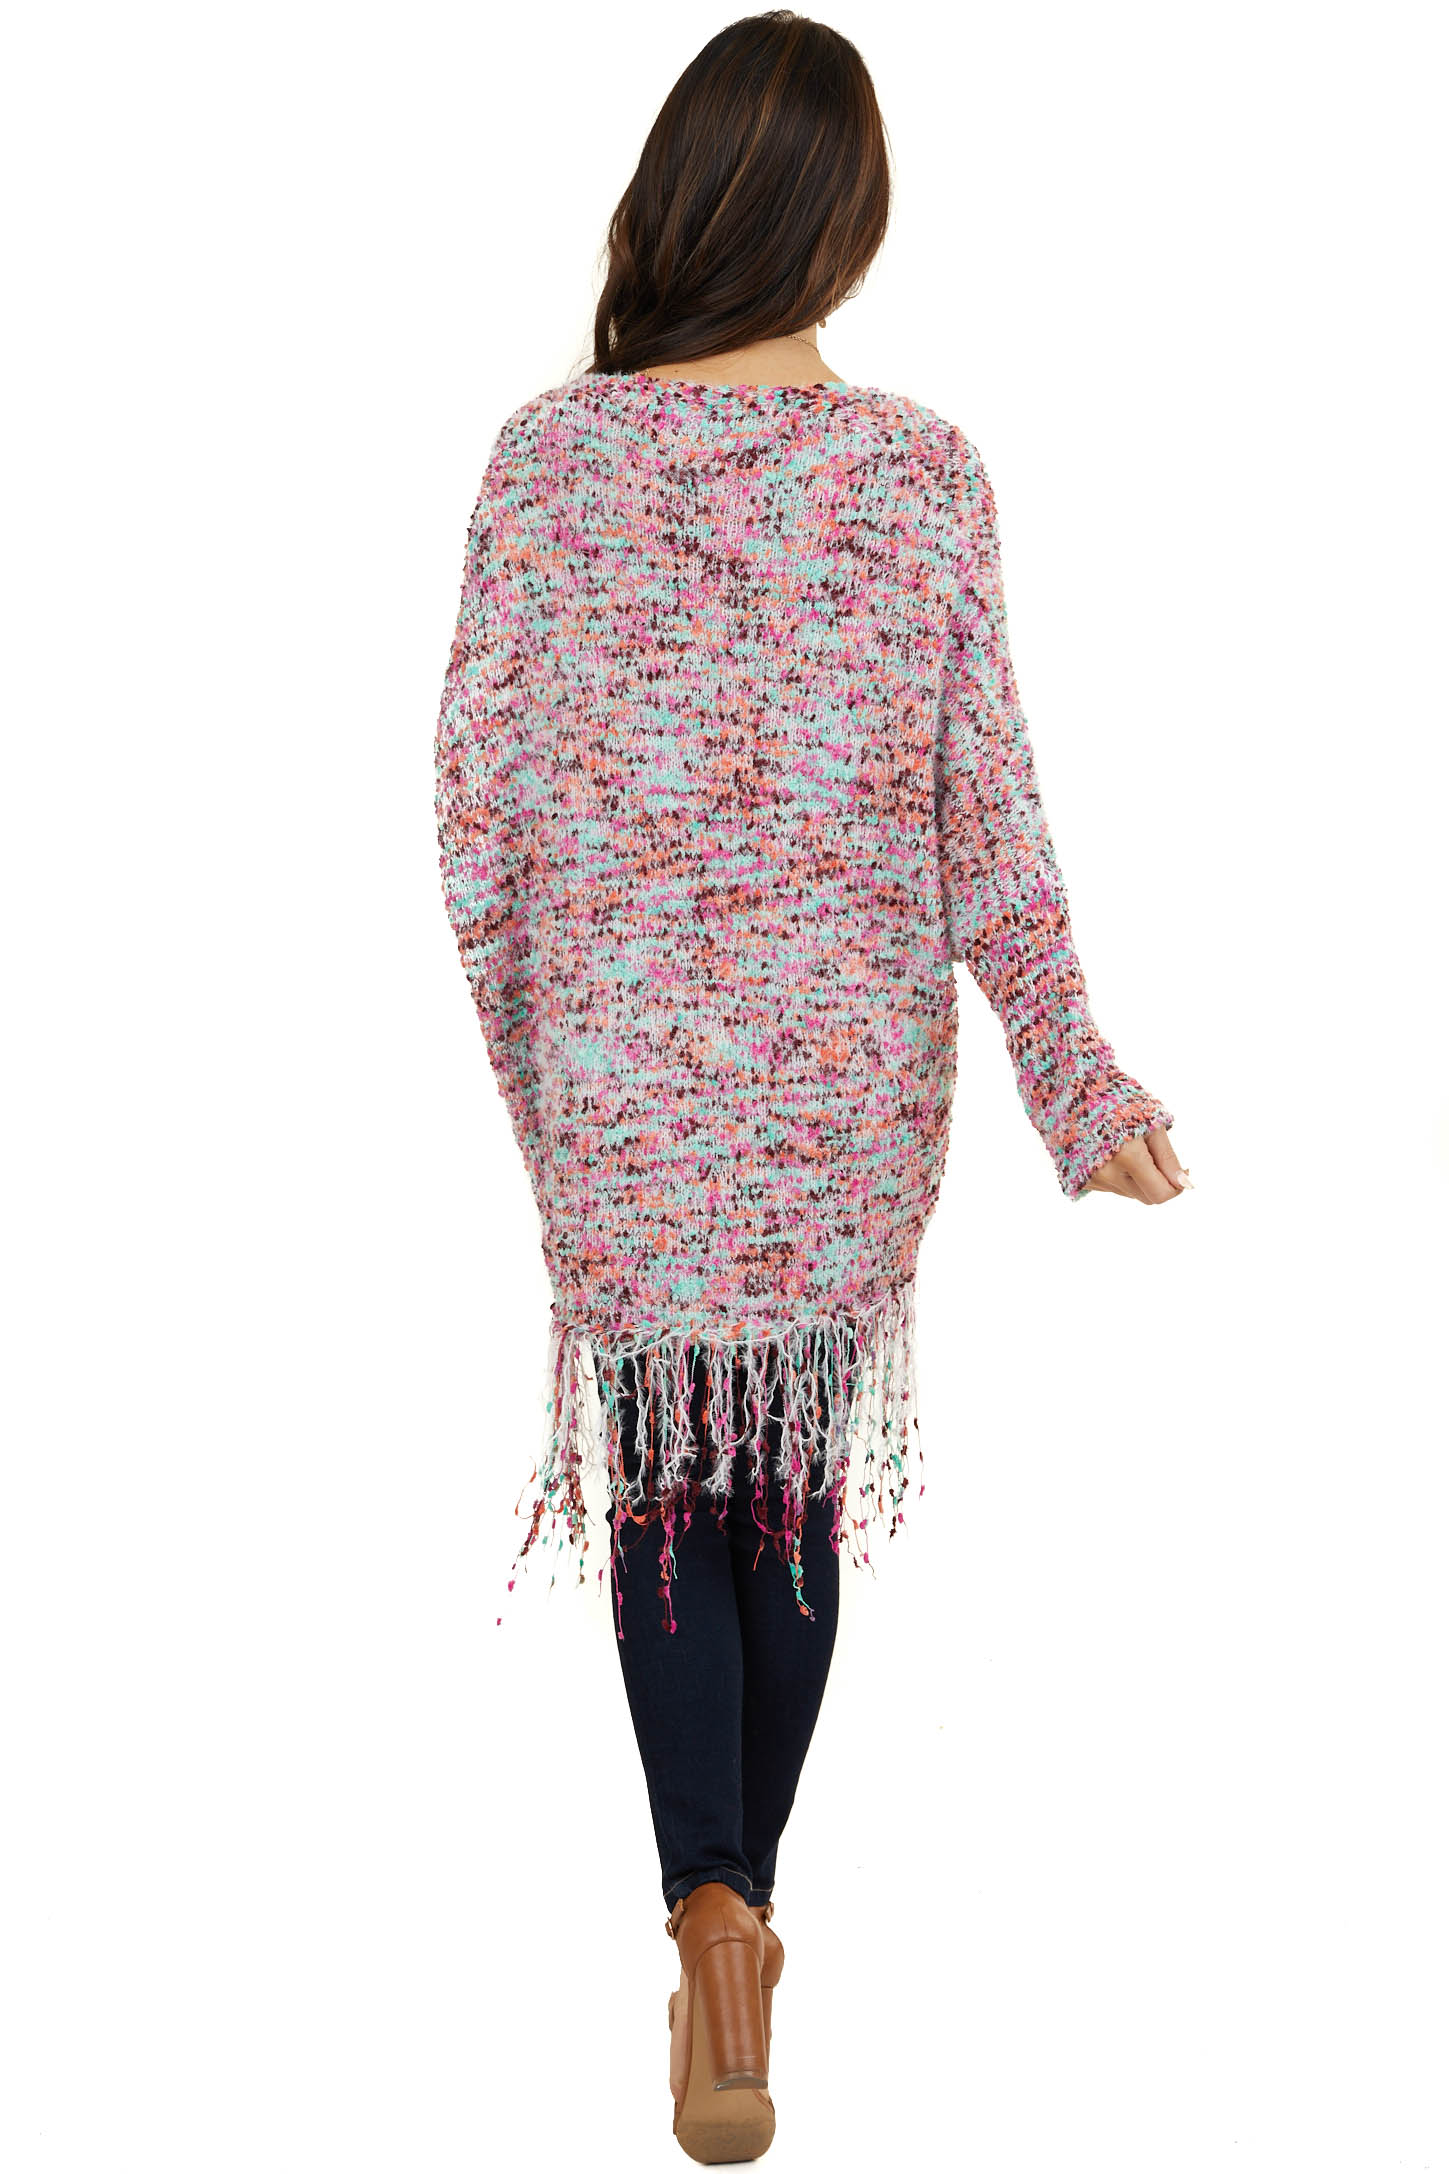 Mint and Fuchsia Confetti Knit Cardigan with Fringe Details